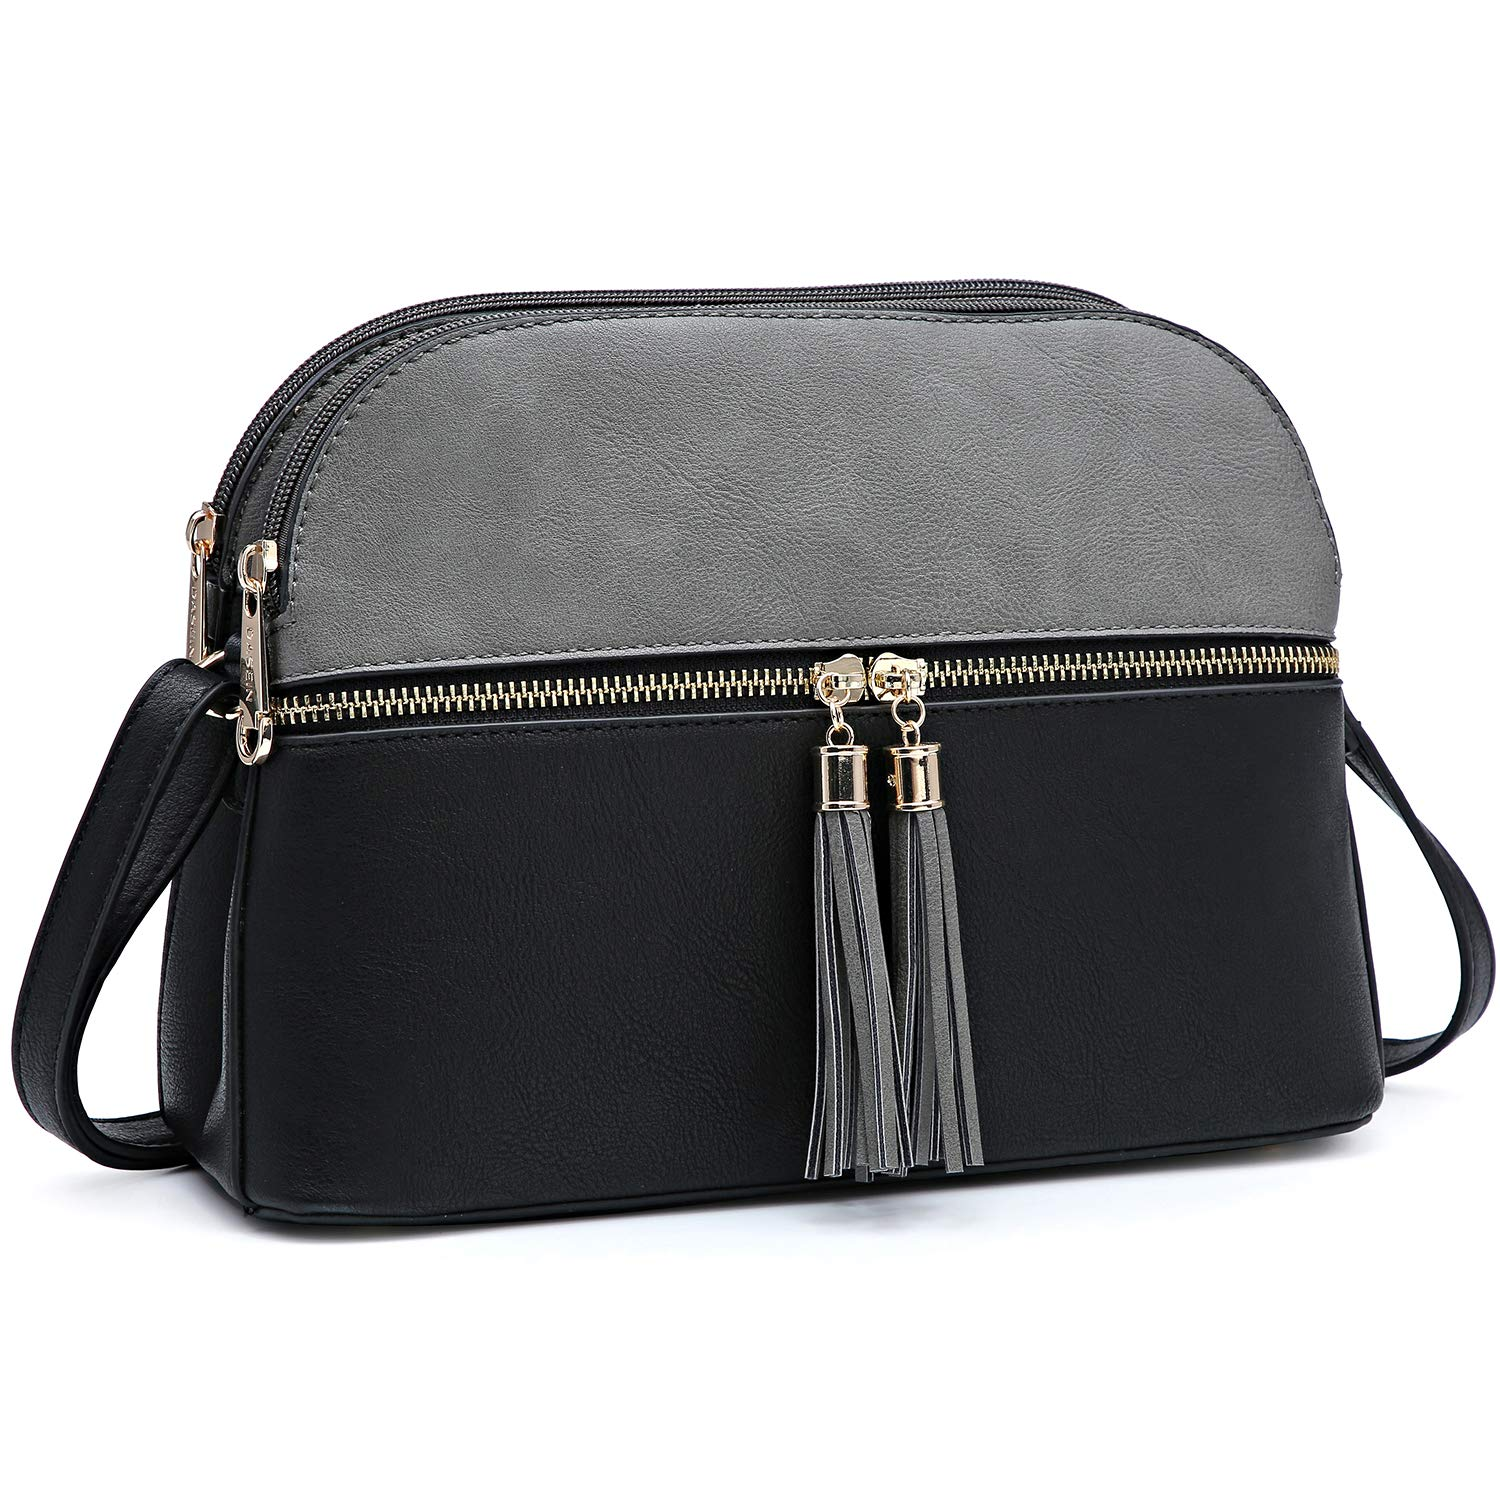 8147grey Black Functional Lightweight Crossbody bags for Women Simple Double Zip Around Should Bags Wallet Card Case Holder Organizer